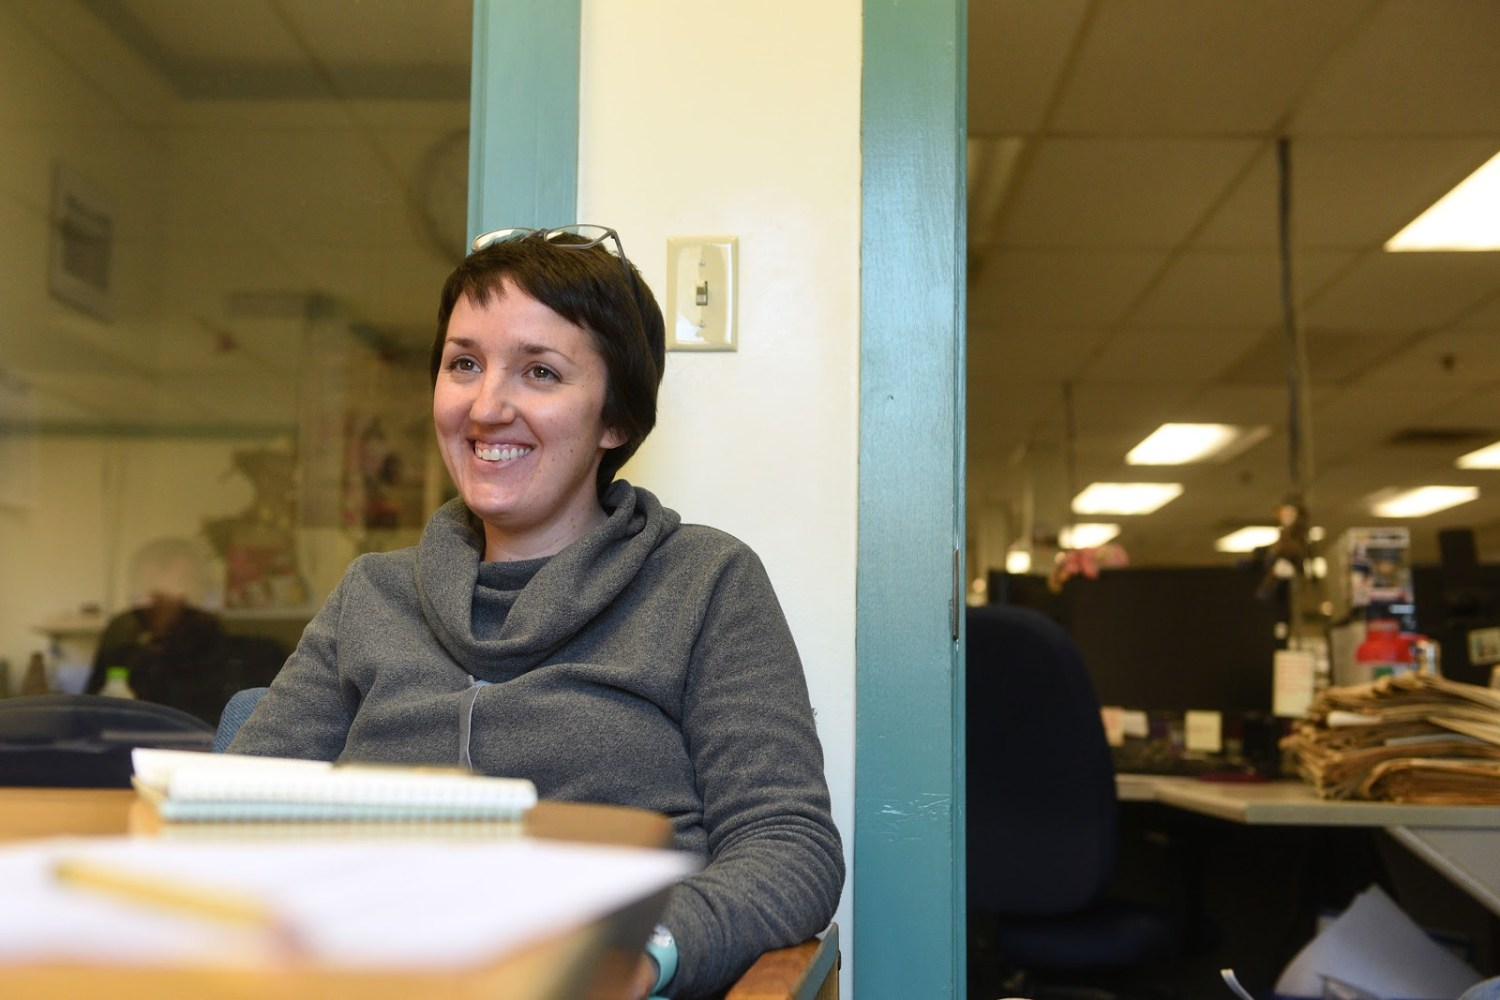 Valley News Web Editor Maggie Cassidy, photographed during a meeting at the Valley News in West Lebanon, New Hampshire, on Dec. 4, 2018, has been named the newspaper's next Editor. She is the first woman to lead the newsroom in its 66-year history. (Photo by Jennifer Hauck/Valley News)